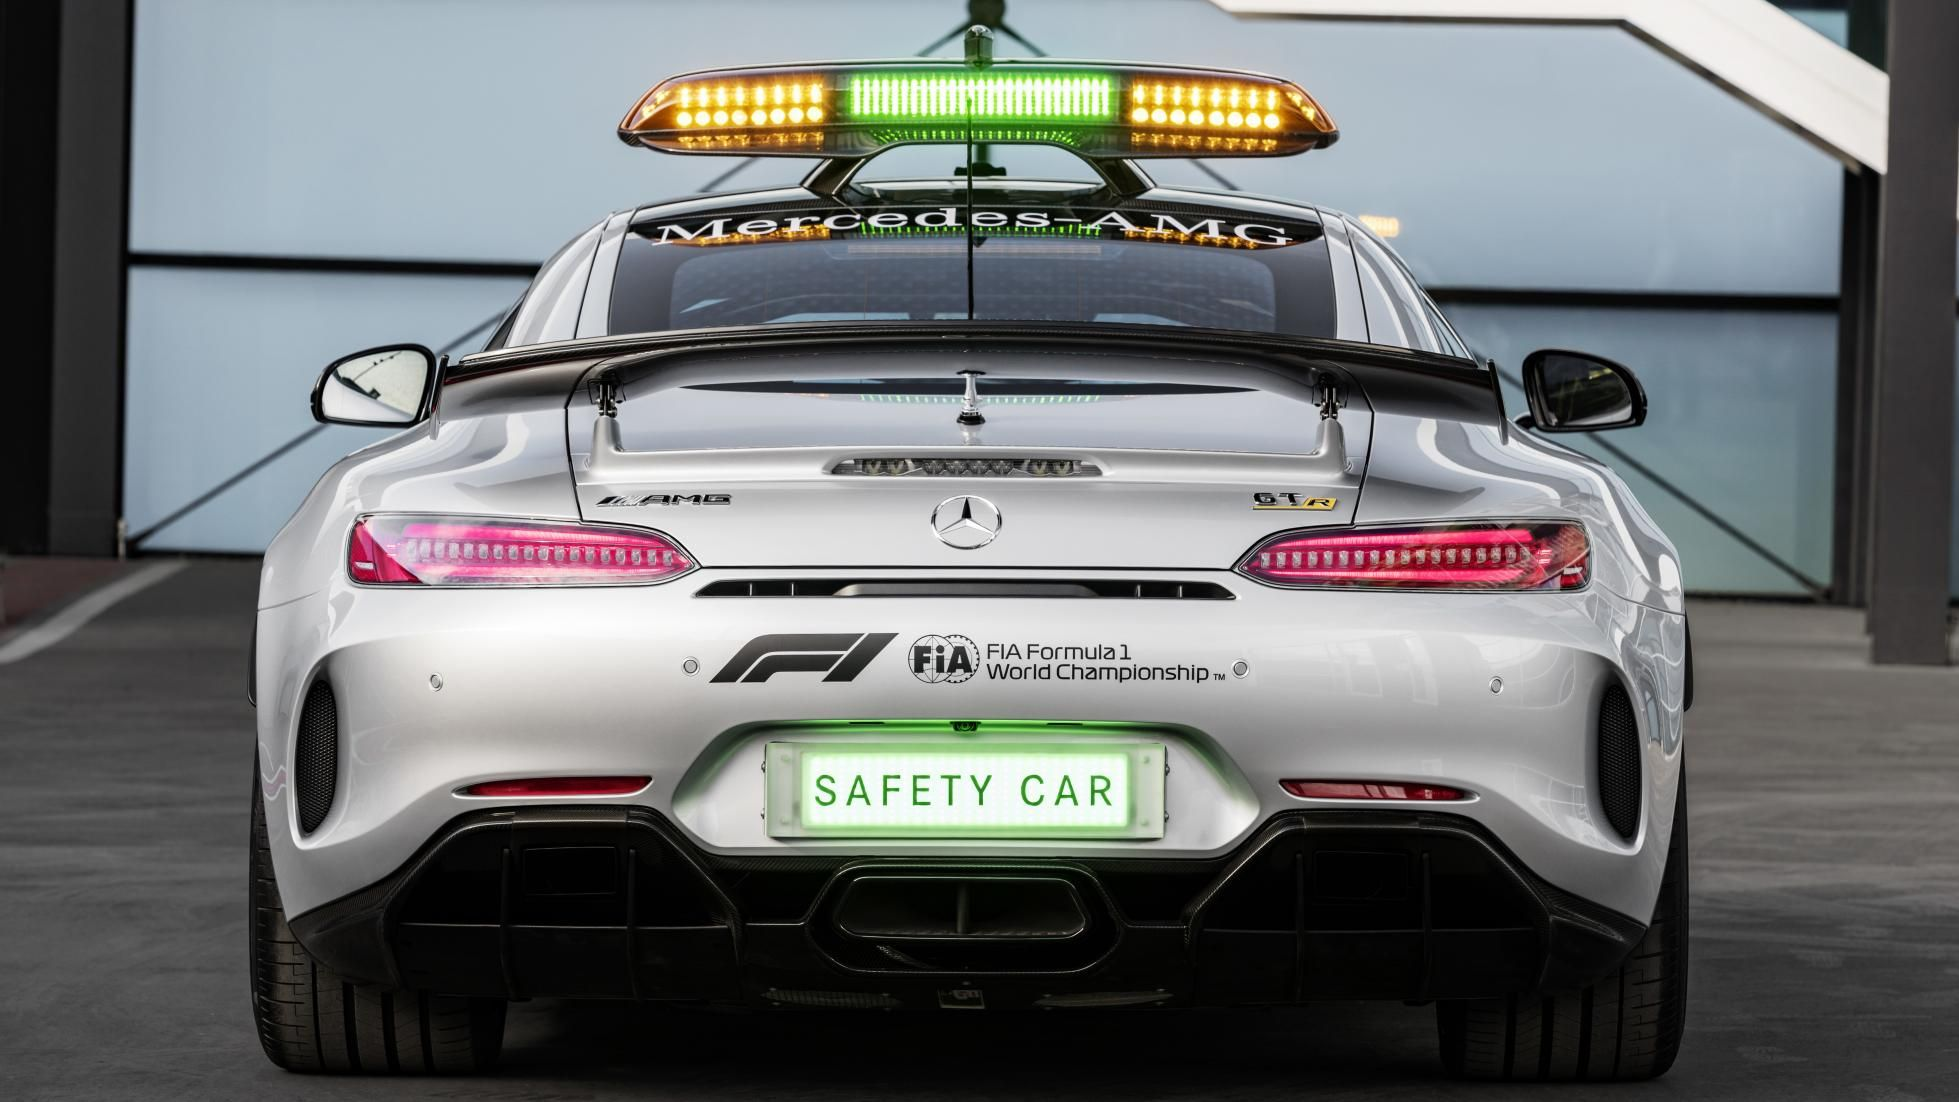 F1 Safety Car 2018 Amg Gt R Complete With 585bhp Mercedes Amg Gt R Car Safety Mercedes Amg